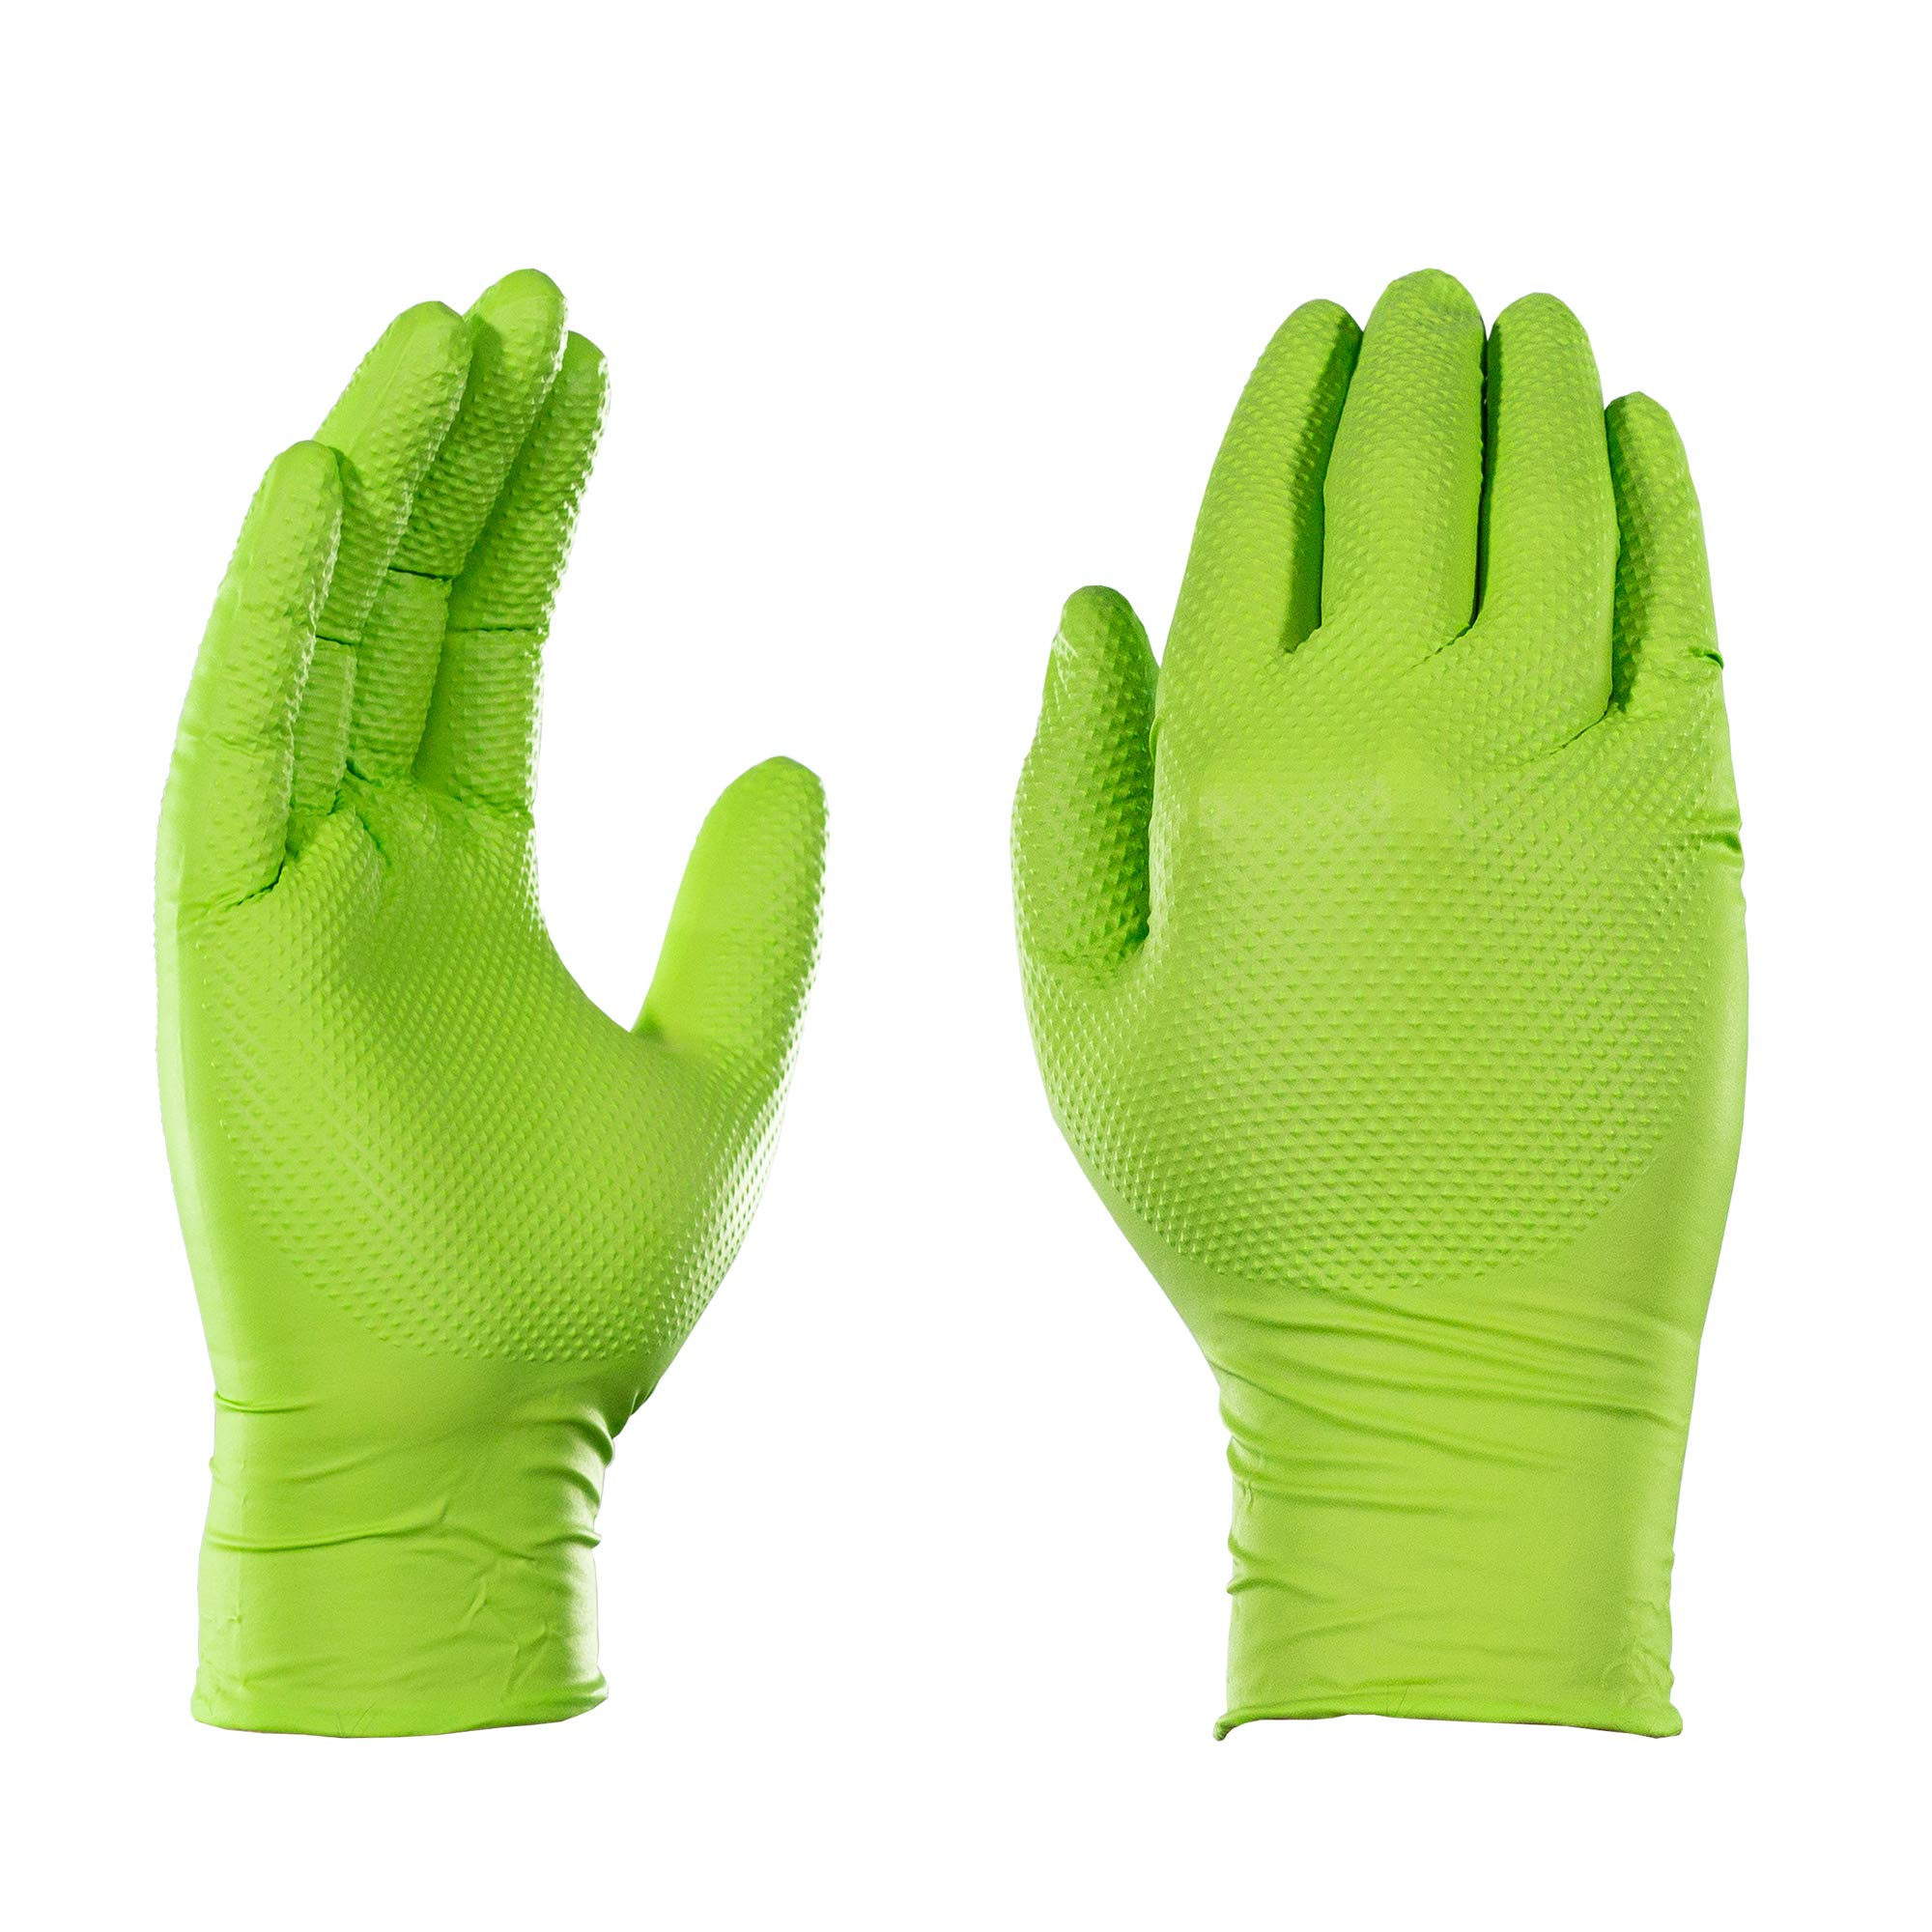 AMMEX - GWGN46100 - Nitrile Gloves - Gloveworks - HD, Disposable, Powder Free, 8 mil, Large, Green (Case of 1000) by Ammex (Image #1)